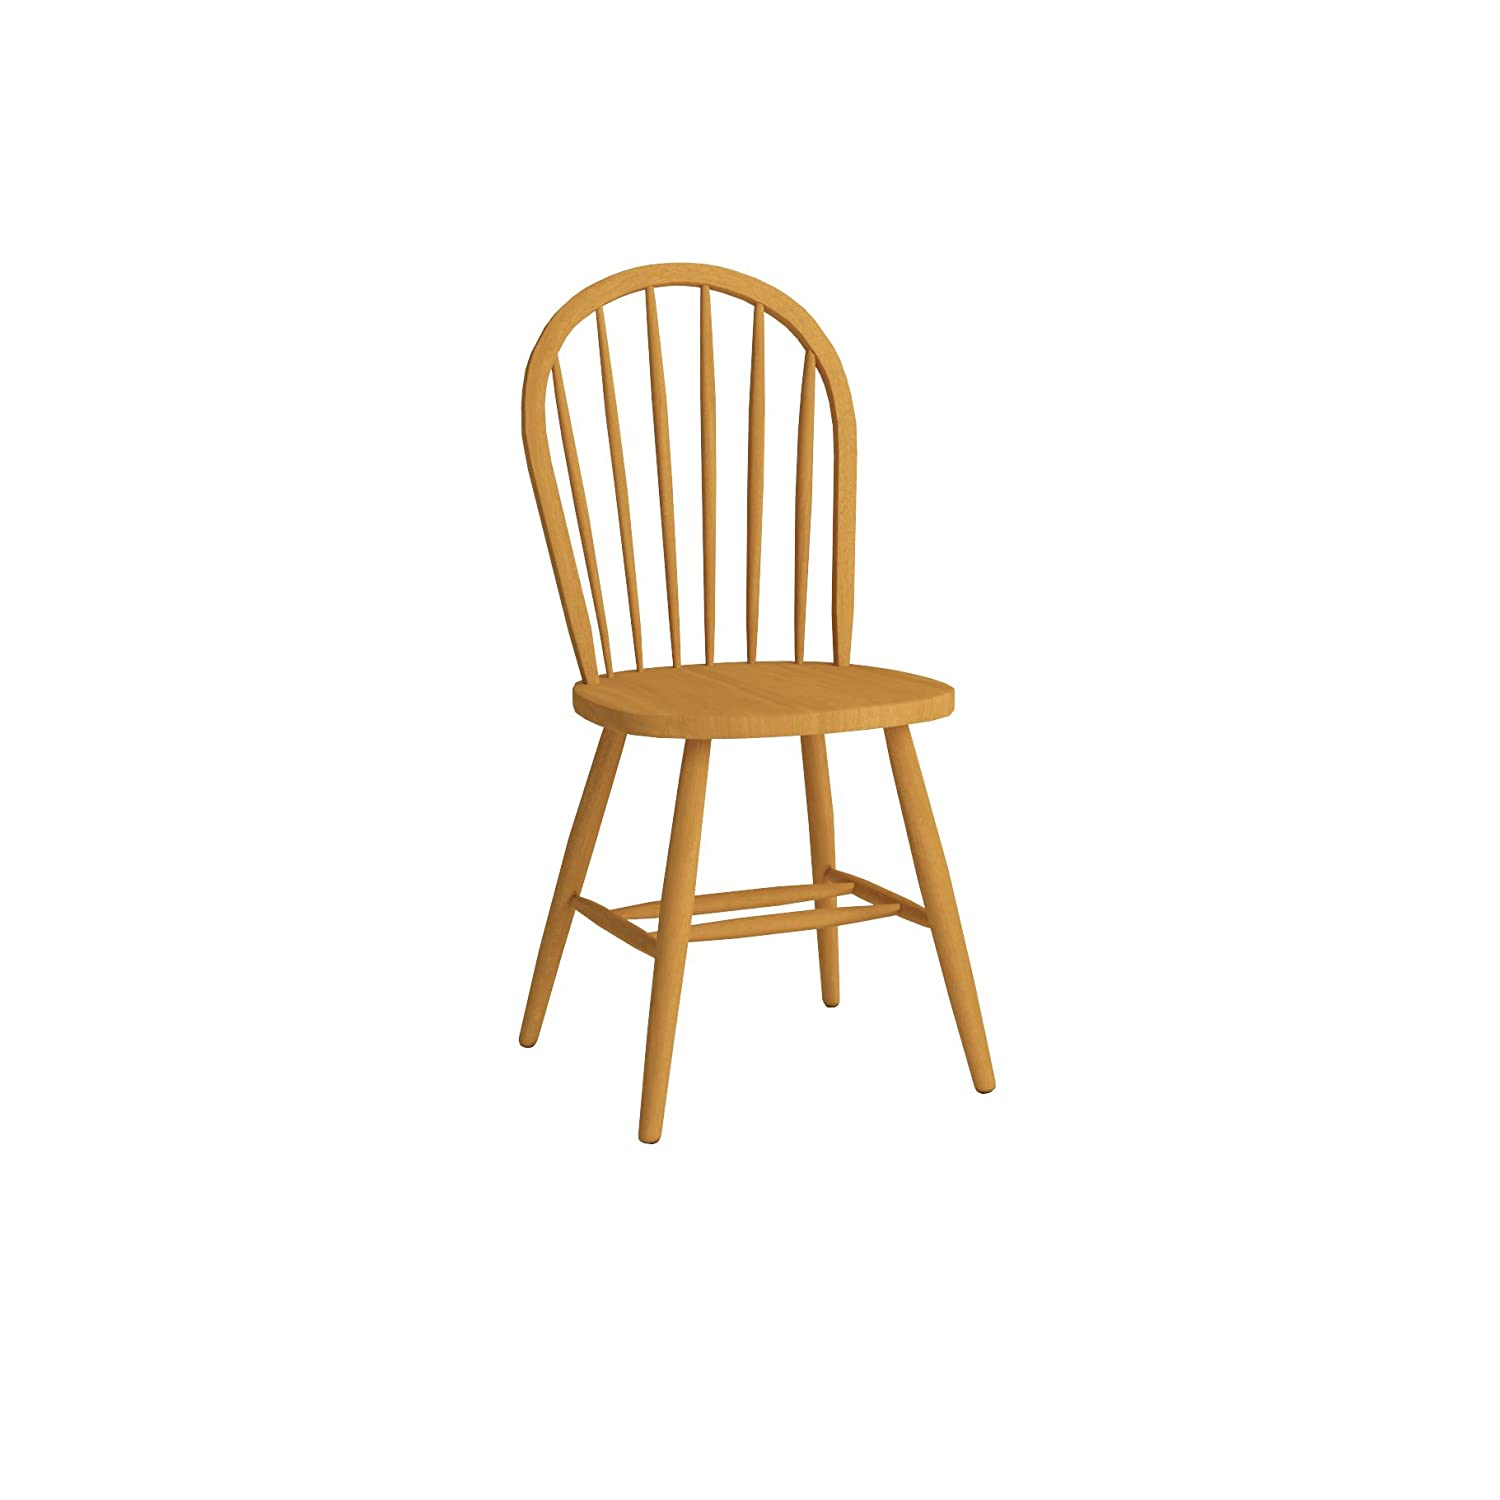 Amazon Winsome Wood Windsor Chair Natural Set of 2 Chairs